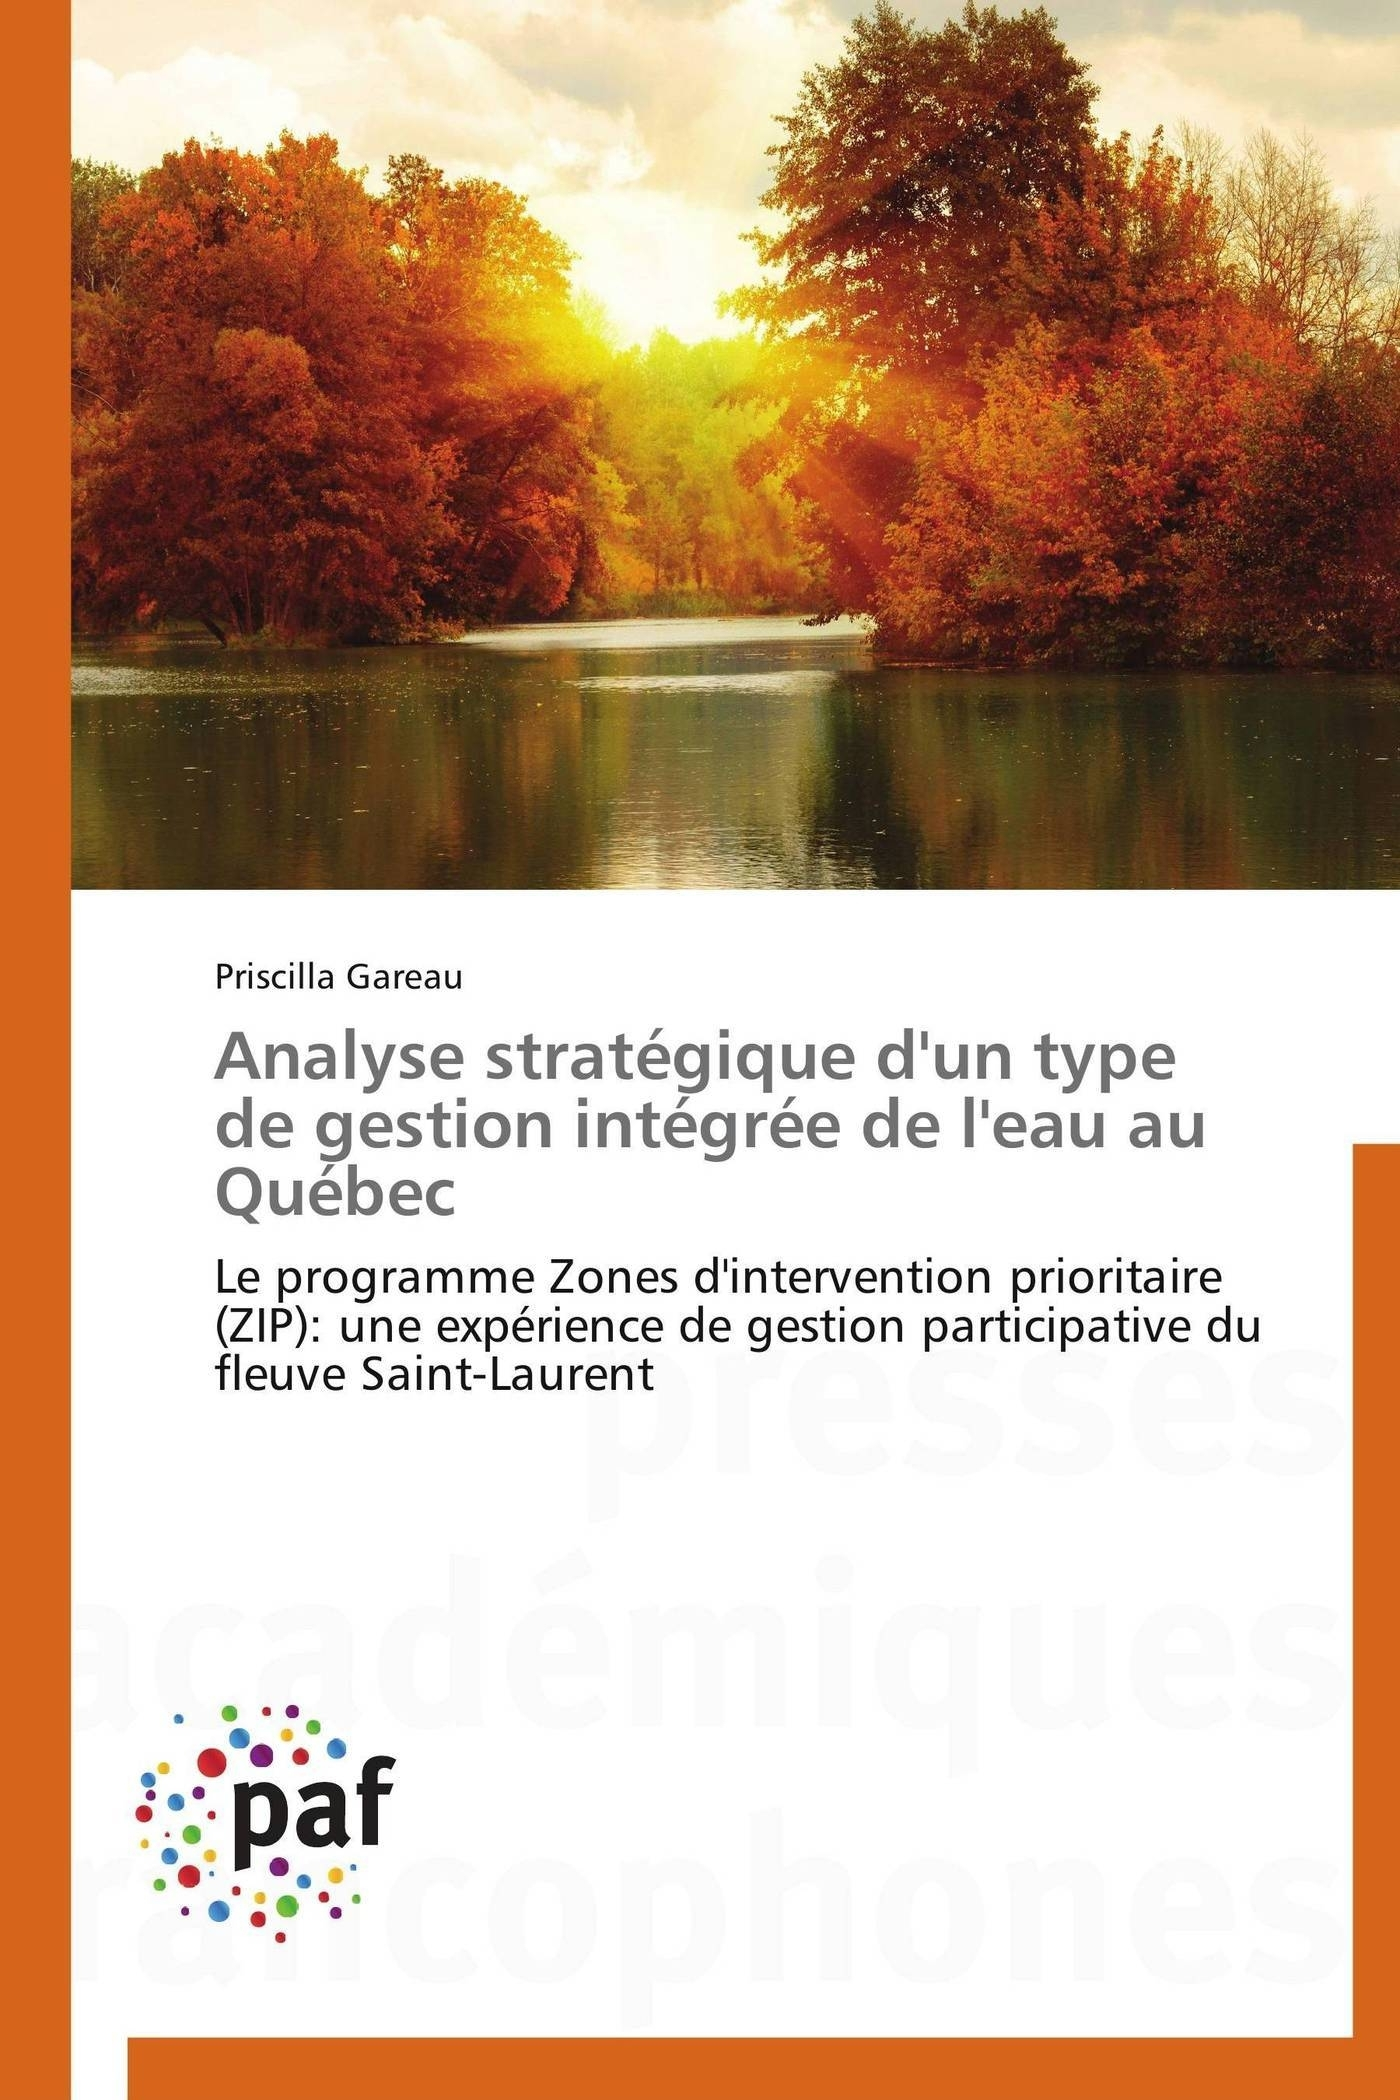 ANALYSE STRATEGIQUE D'UN TYPE DE GESTION INTEGREE DE L'EAU AU QUEBEC